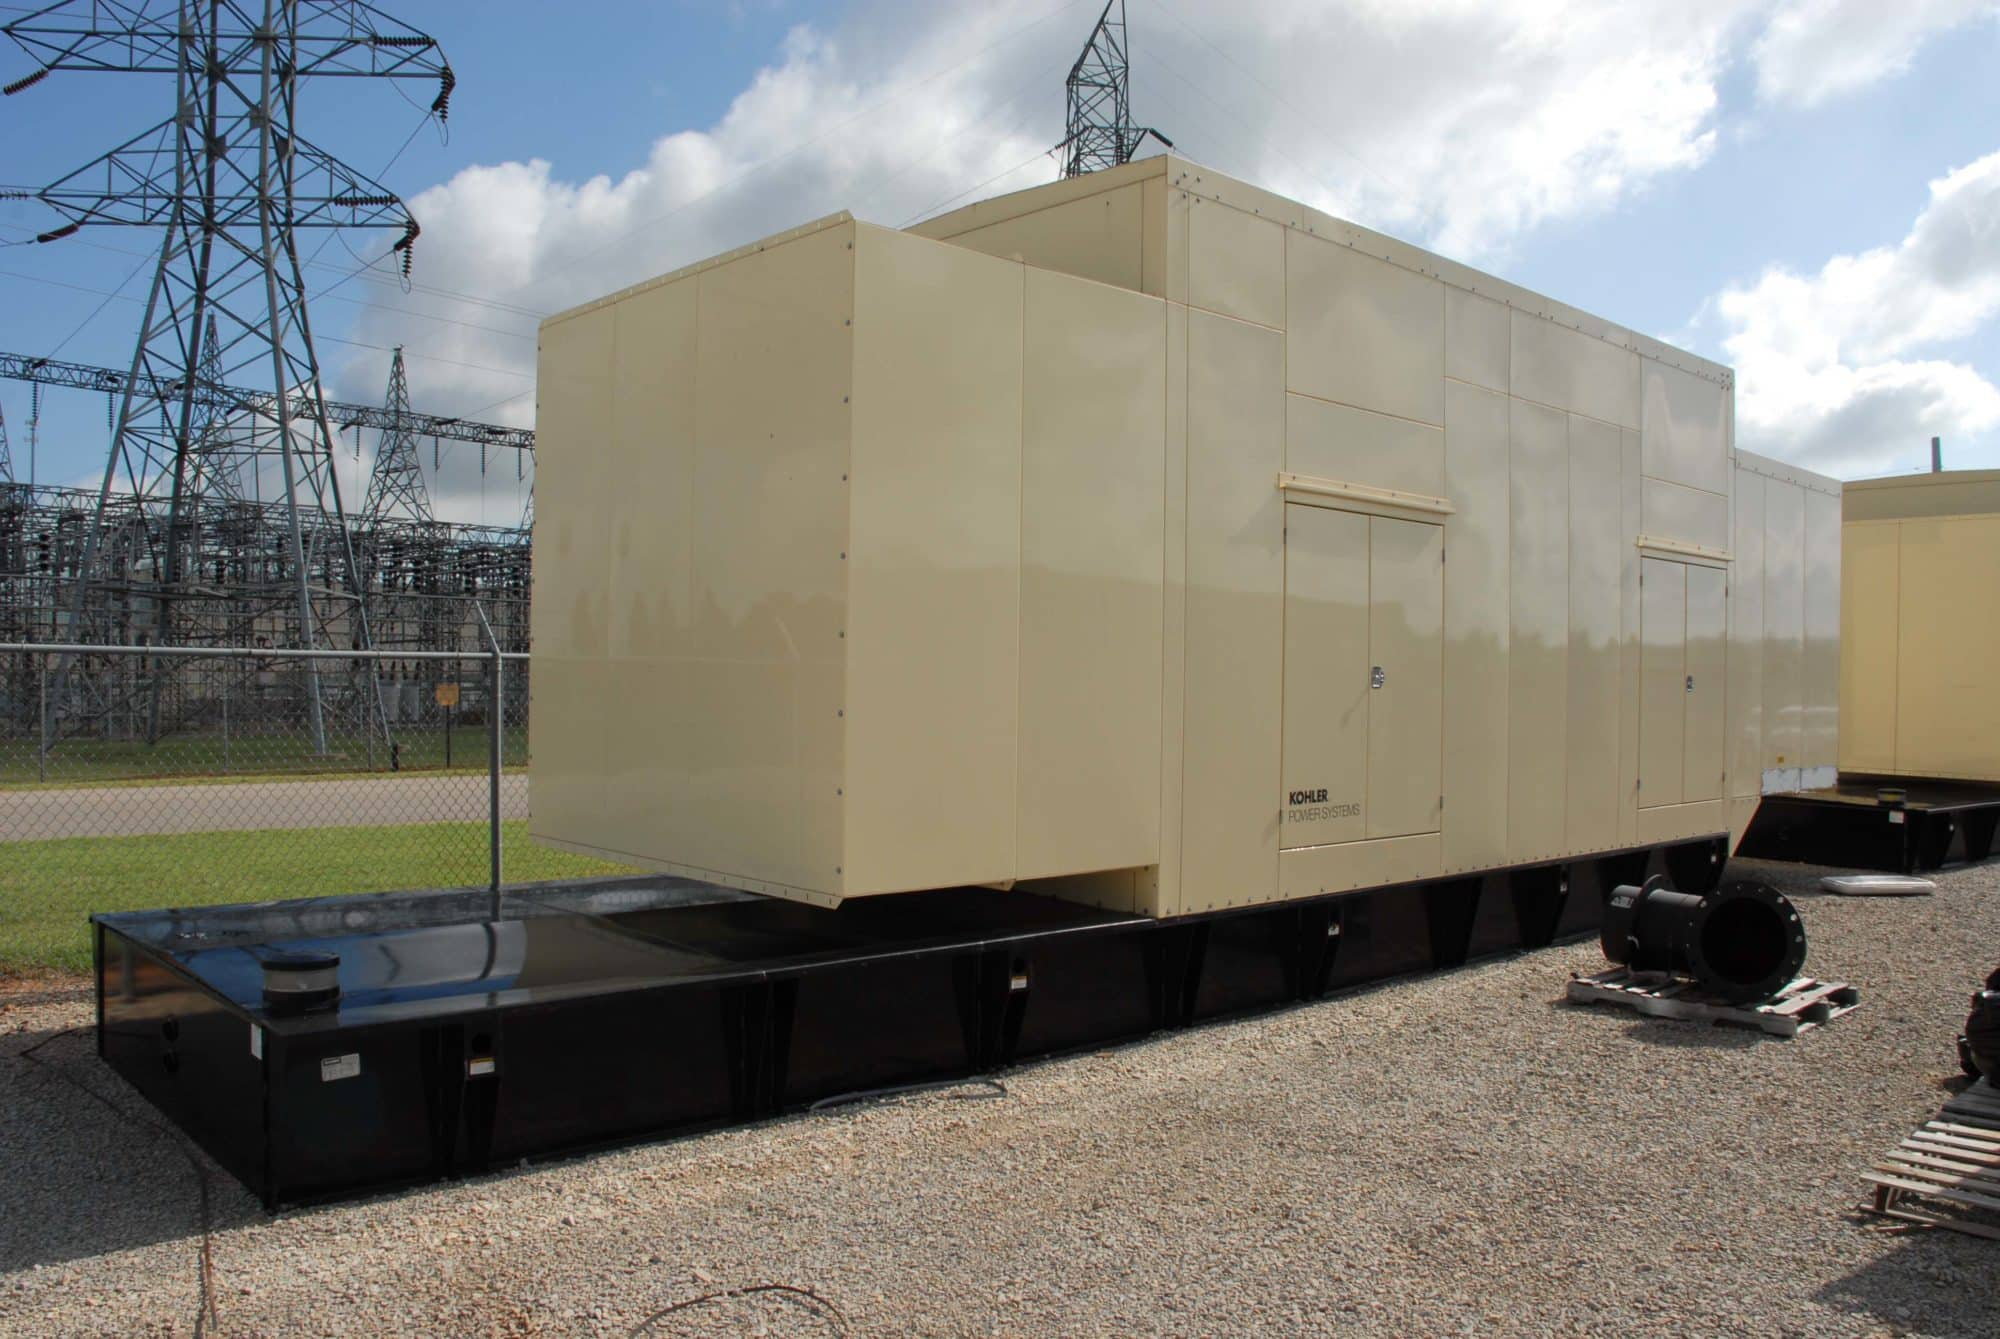 Used 2000 kW Kohler 2000REOZMB 4160V Diesel Generator – EPA Tier 2 – 16 Available!